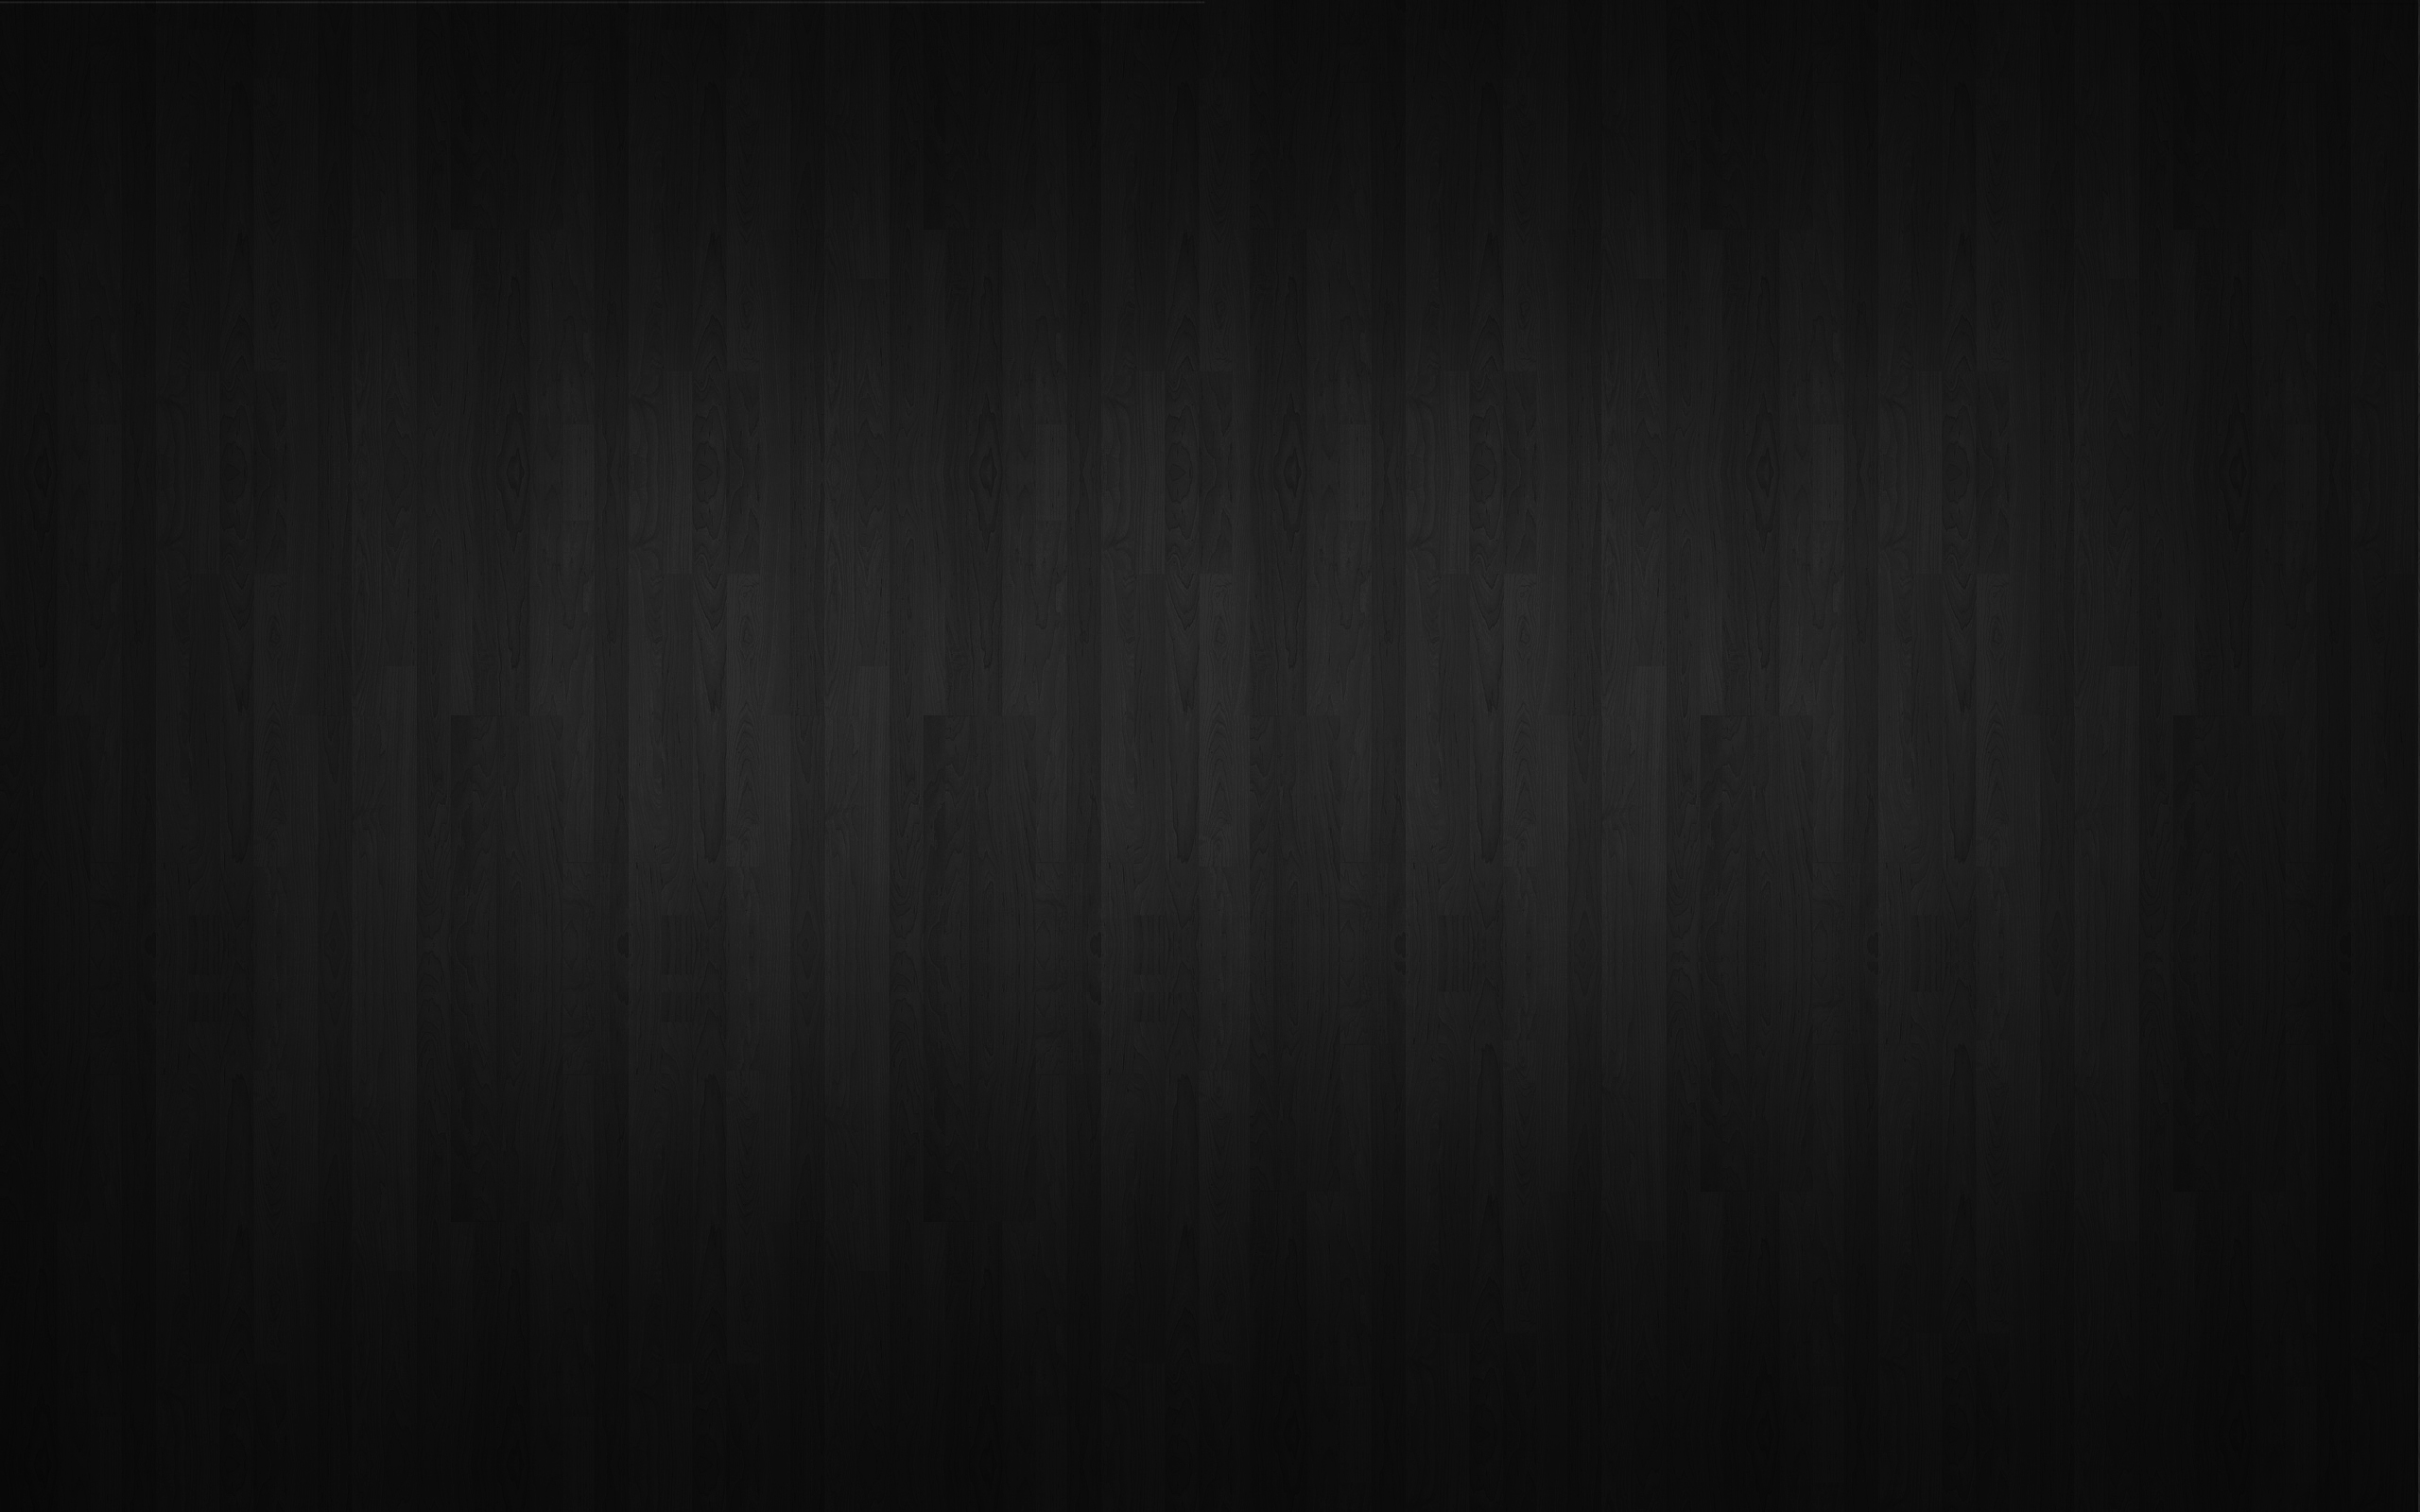 Black Wallpapers Best Wallpapers 2560x1600